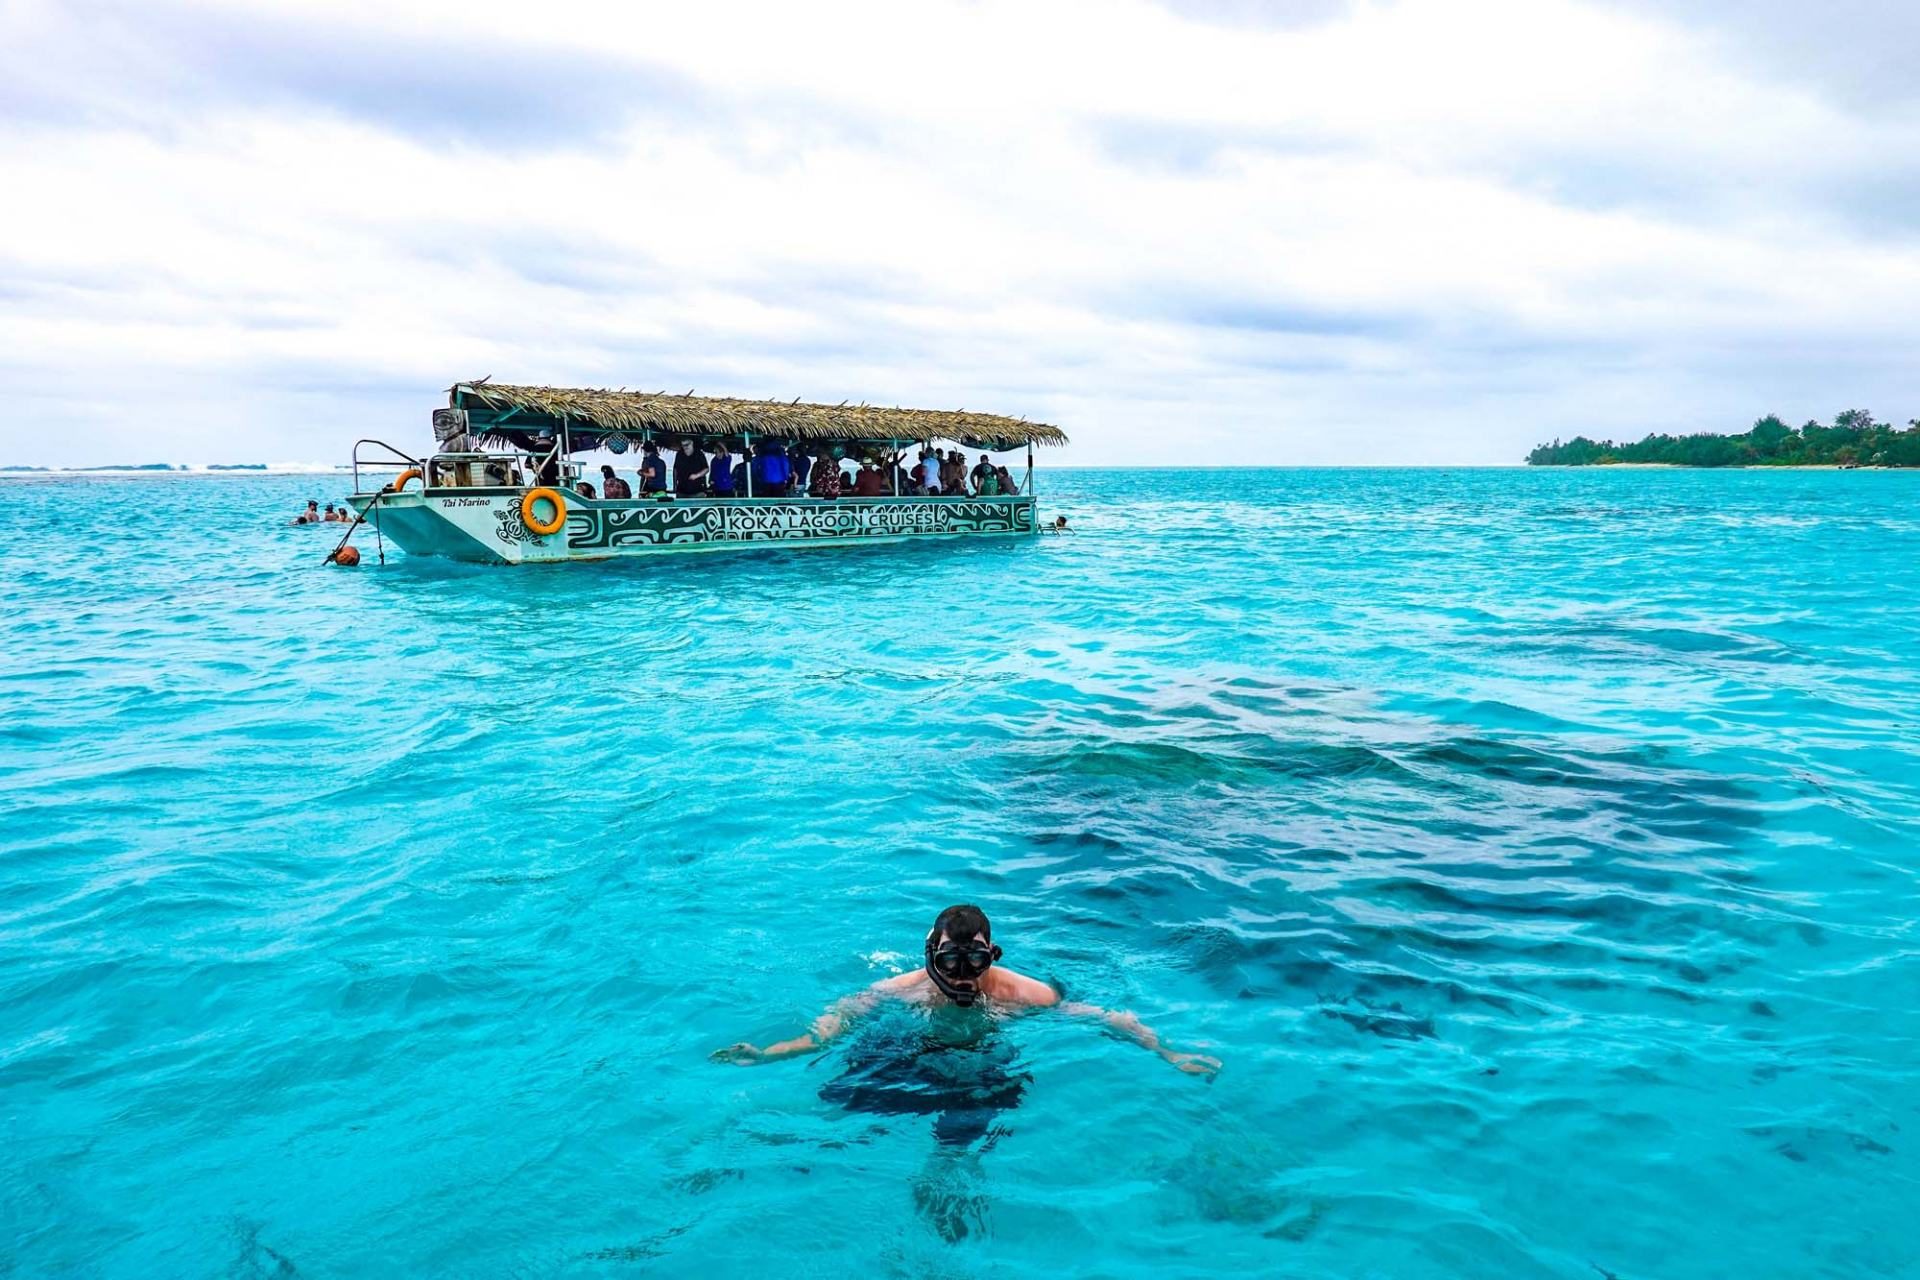 koka lagoon cruise in the cook islands